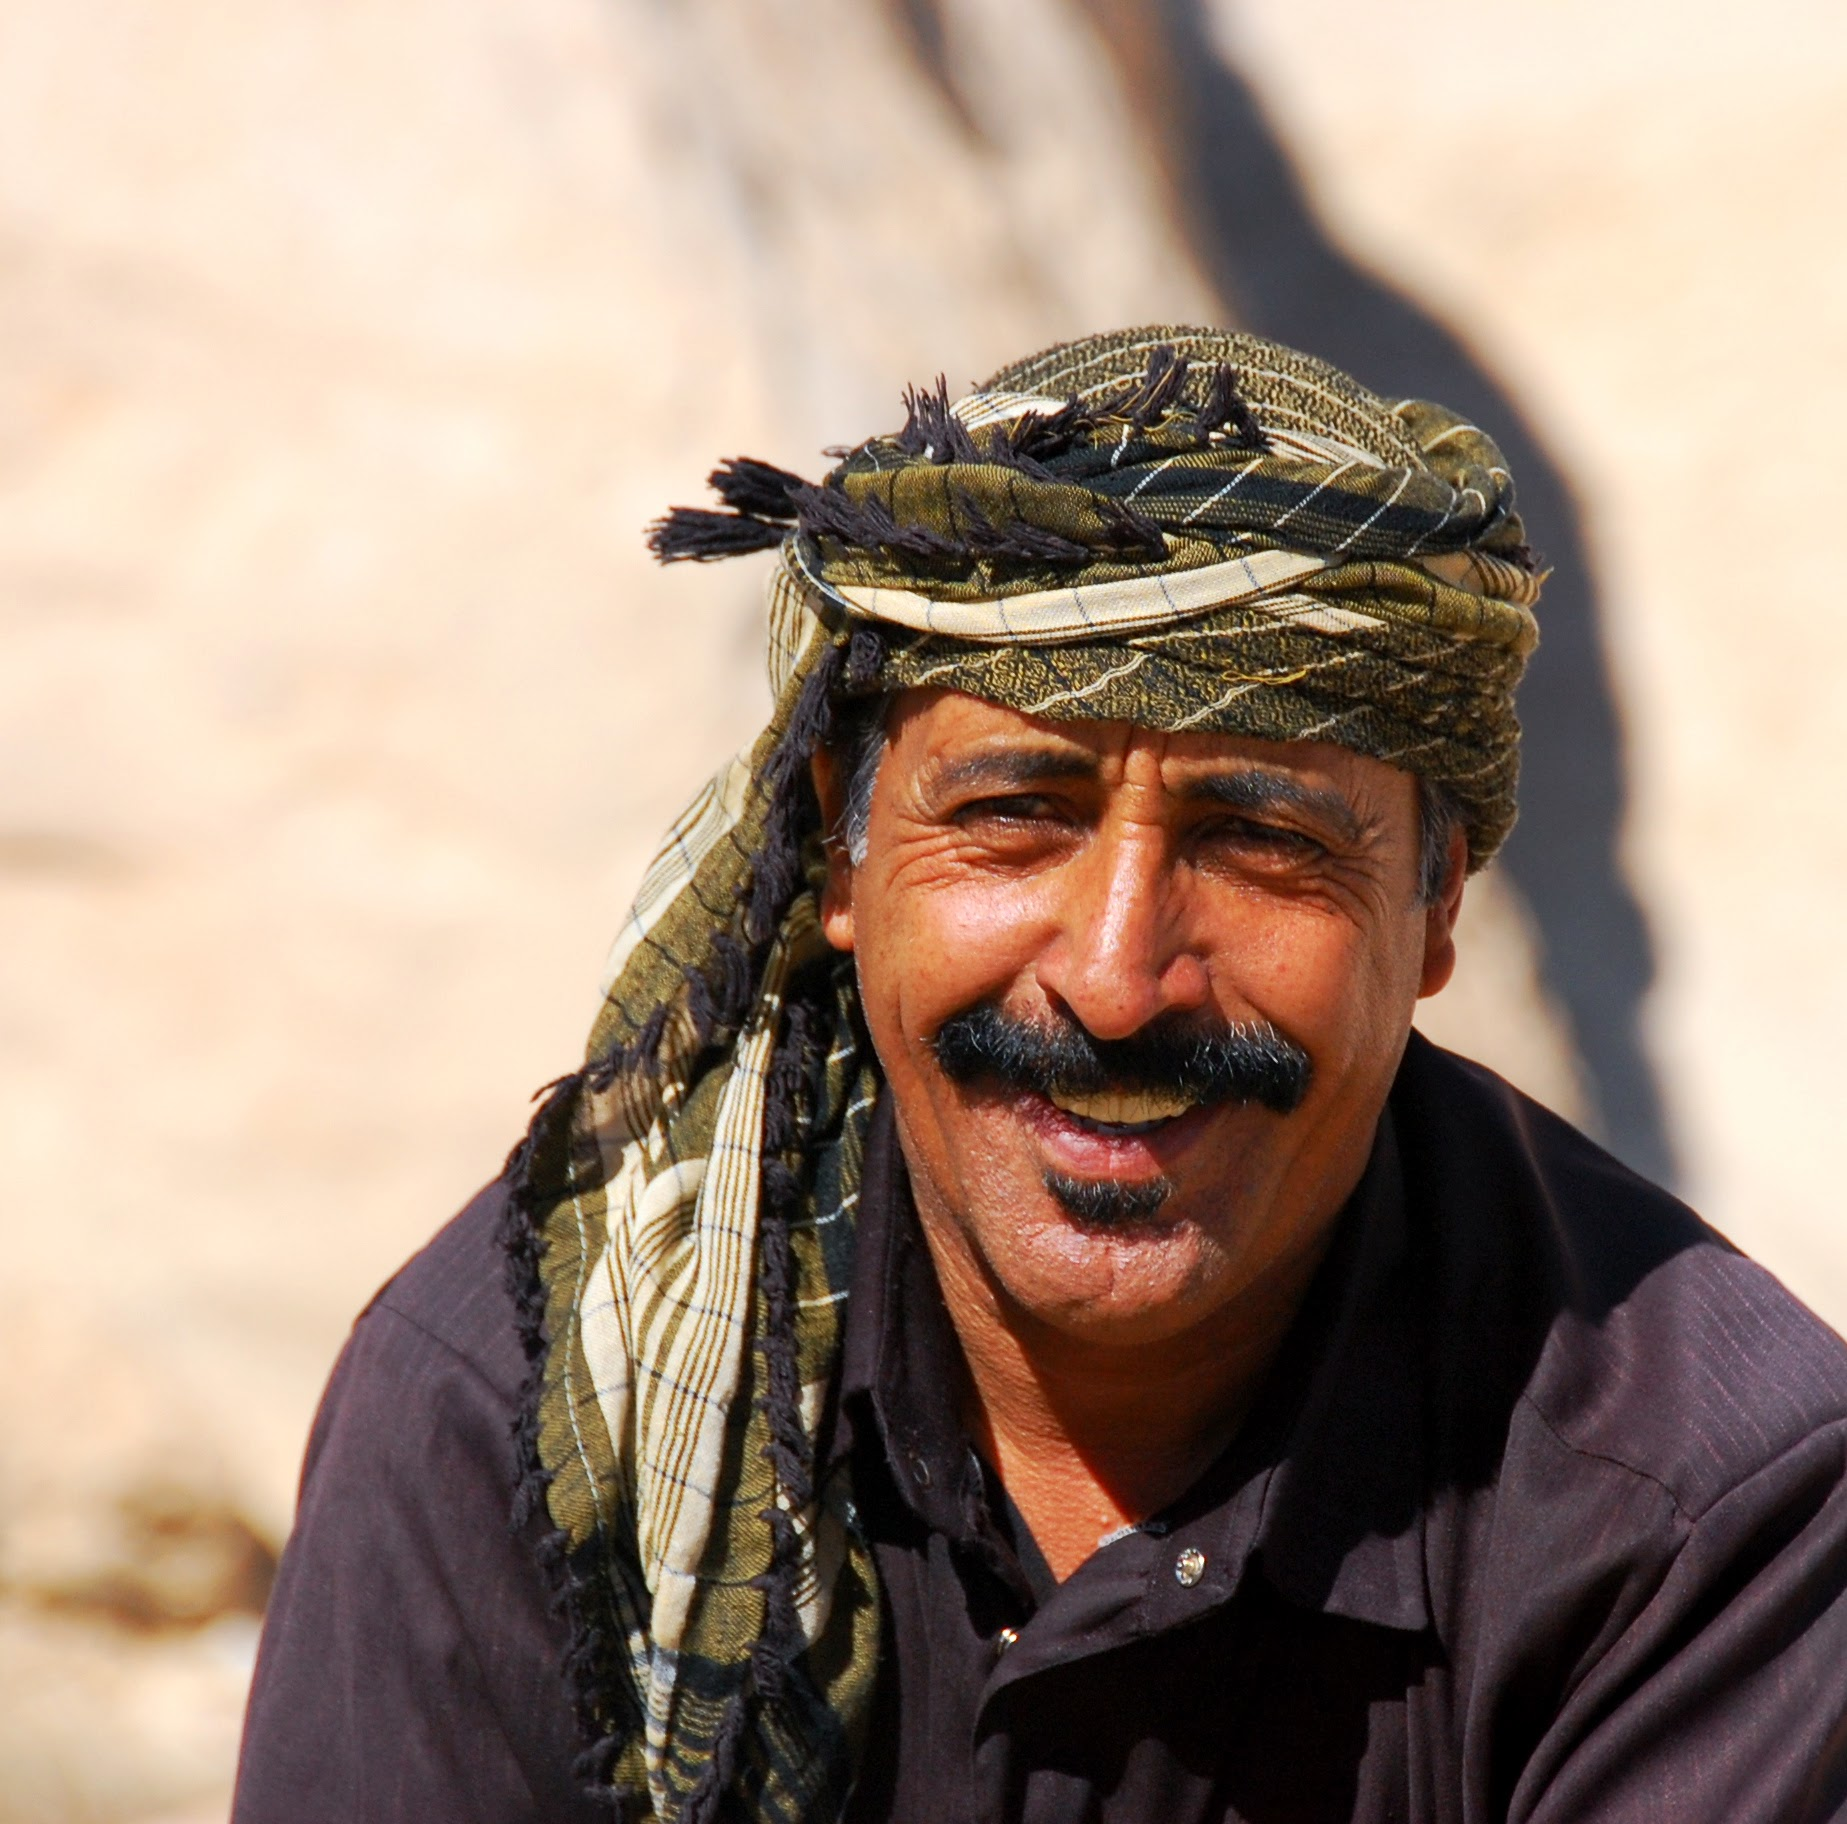 Mohammed Abu Ali, our guide who helped us explore Dana Nature Reserve in search of climbing opportunities